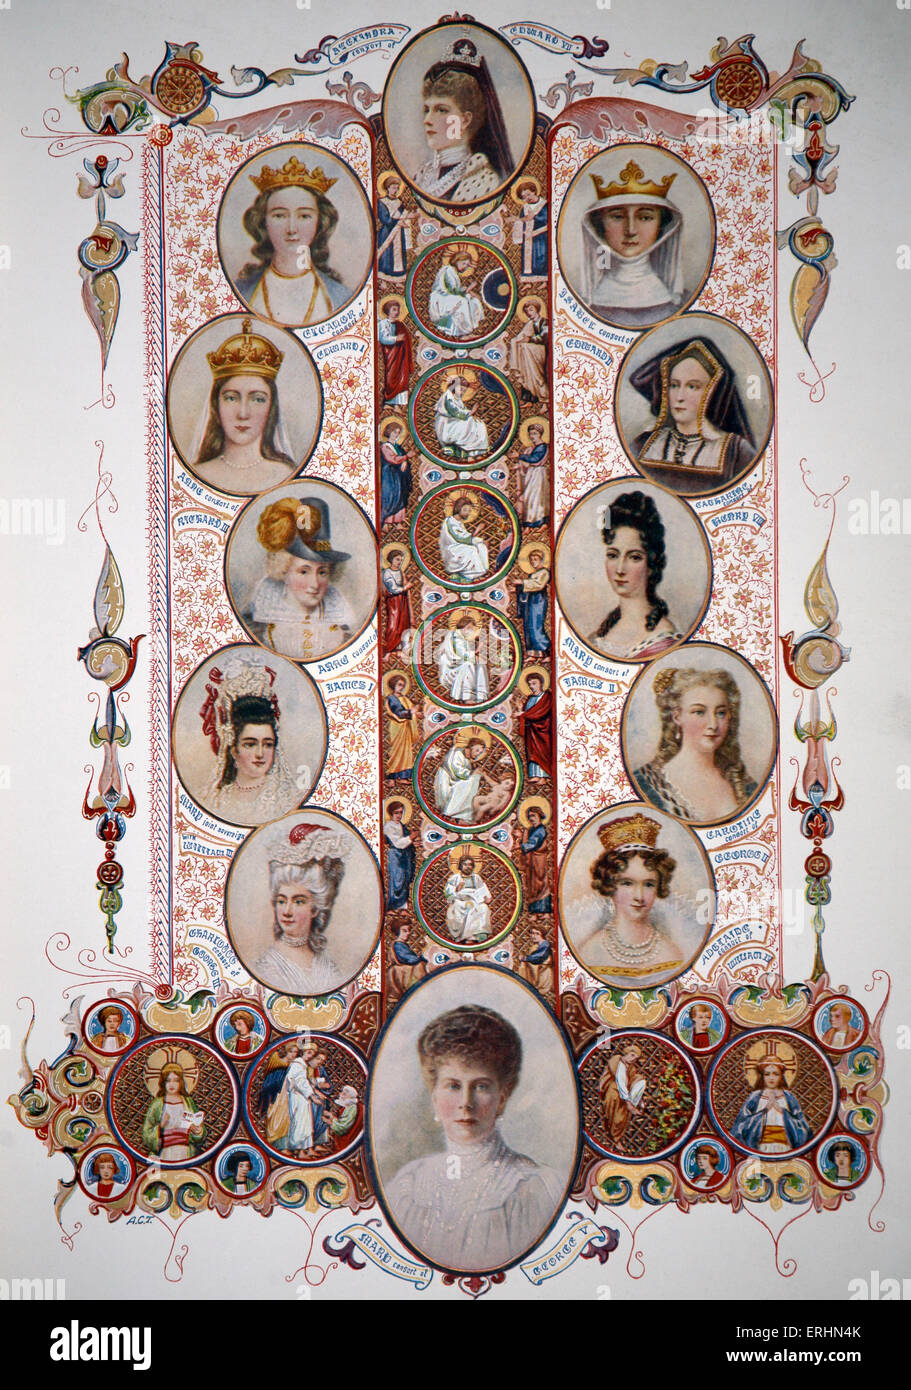 Royal consorts (wives) of British Kings up until 1910. Starting with Eleanor of Castille consort of Edward I, ending - Stock Image